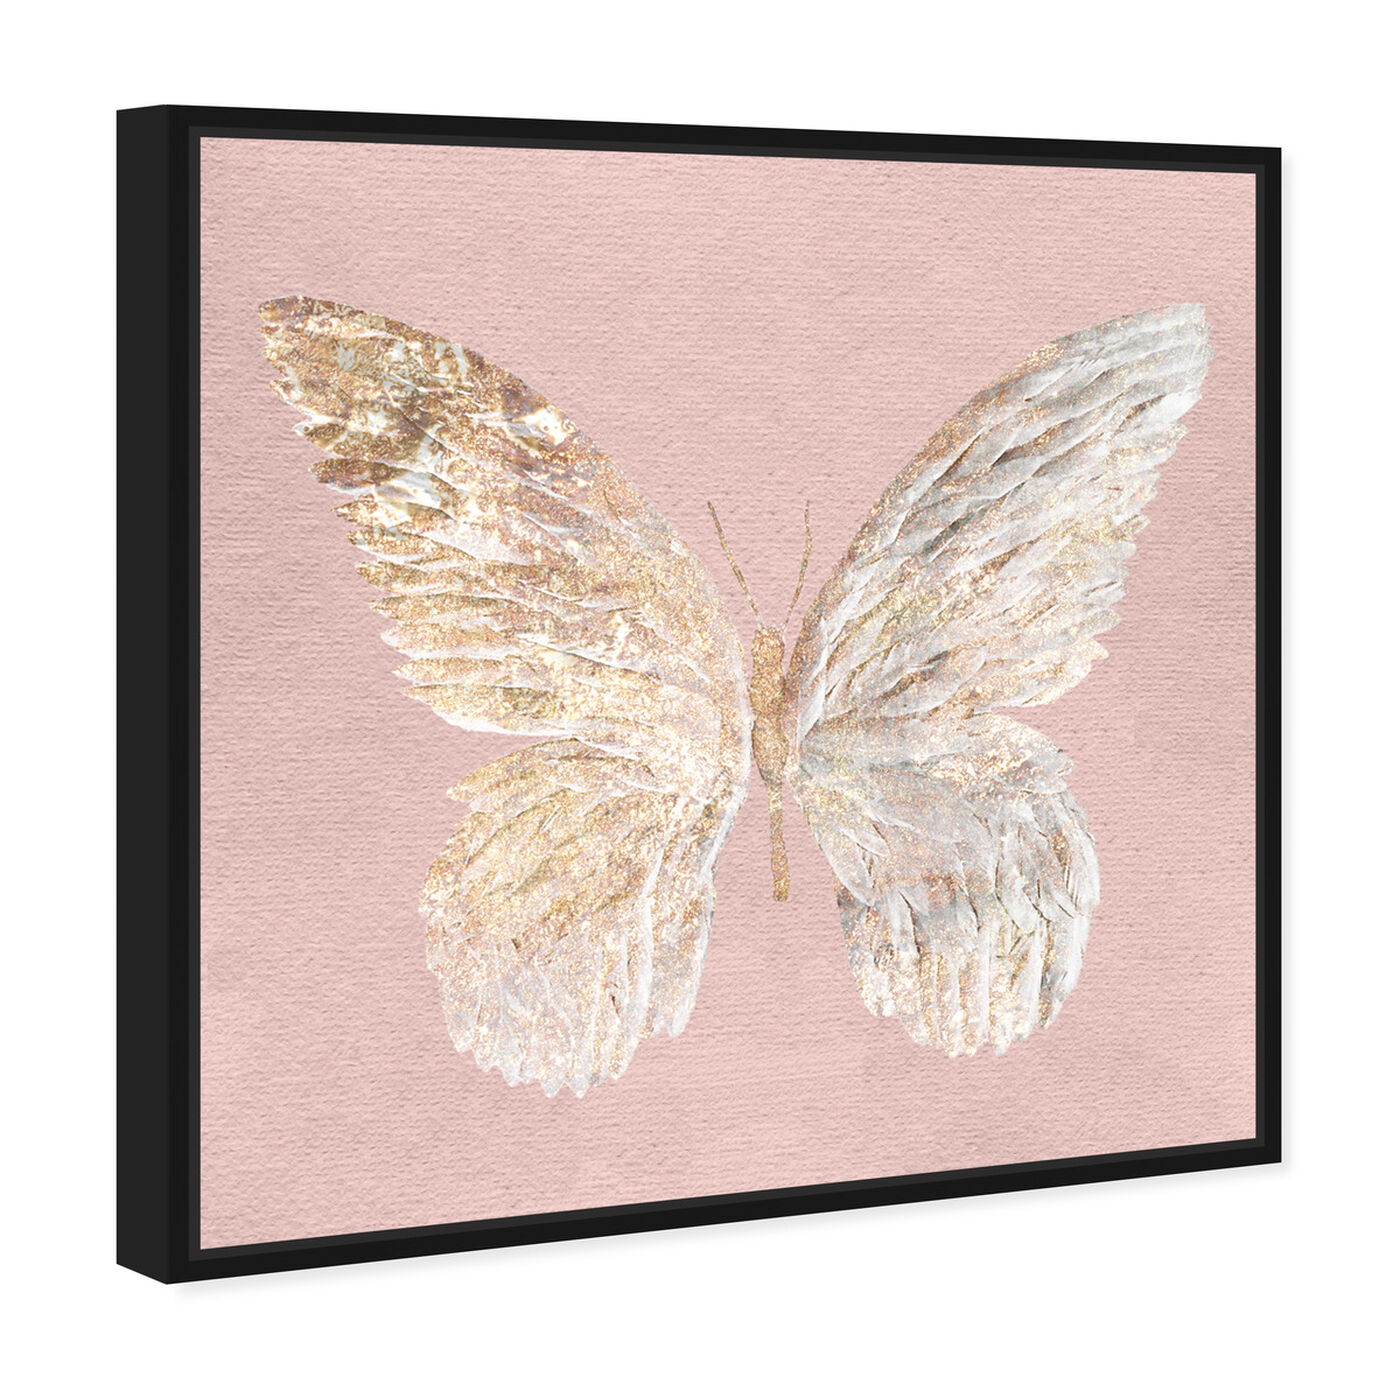 Angled view of Golden Butterfly Glimmer Blush featuring animals and insects art.